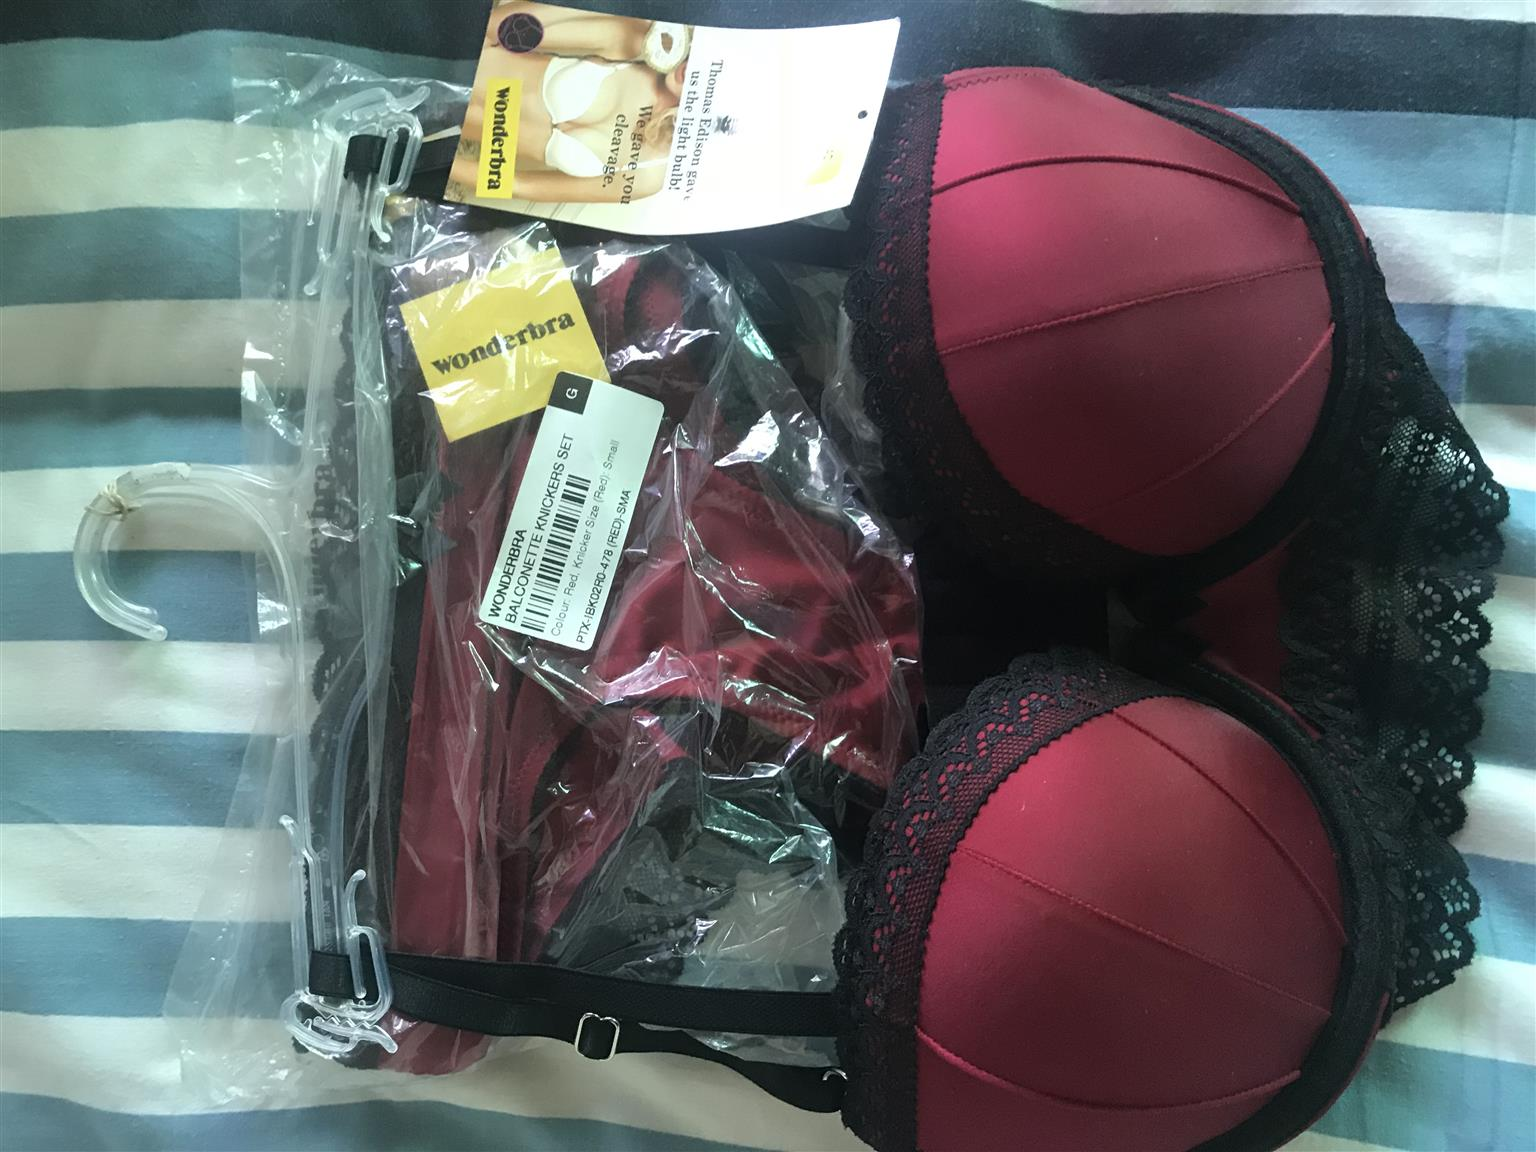 Wonder bra & Knickers Set For Sale